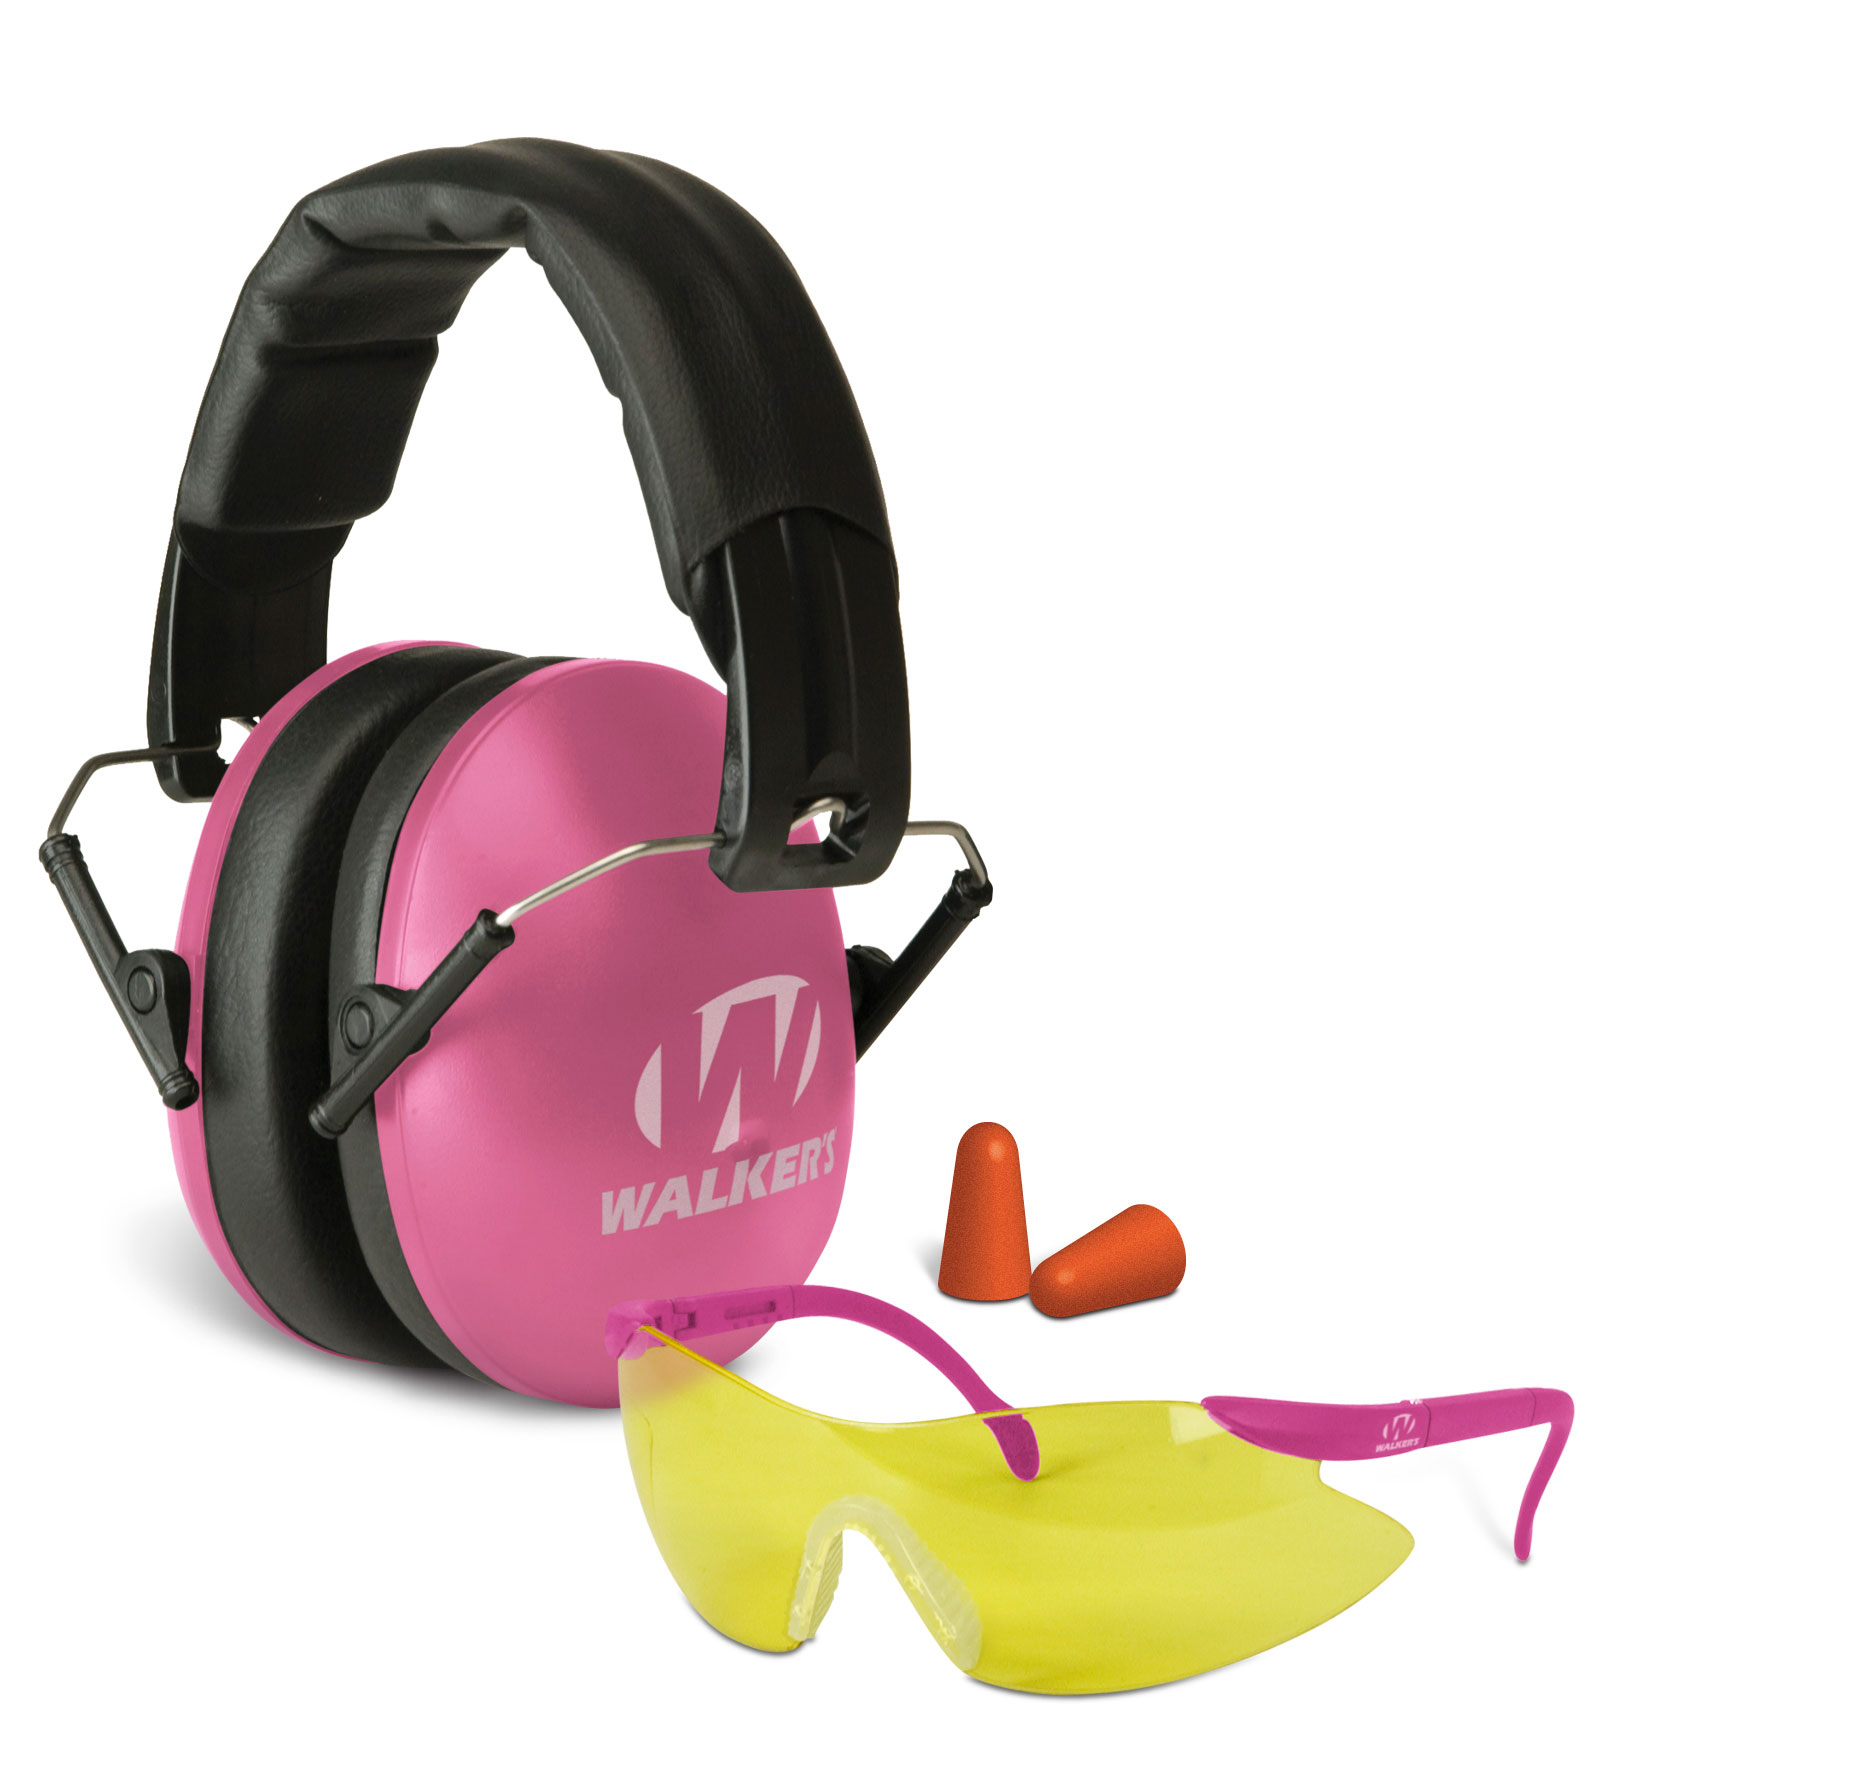 Walker'™s Game Ear Pink Muff/Glasses Passive Combo